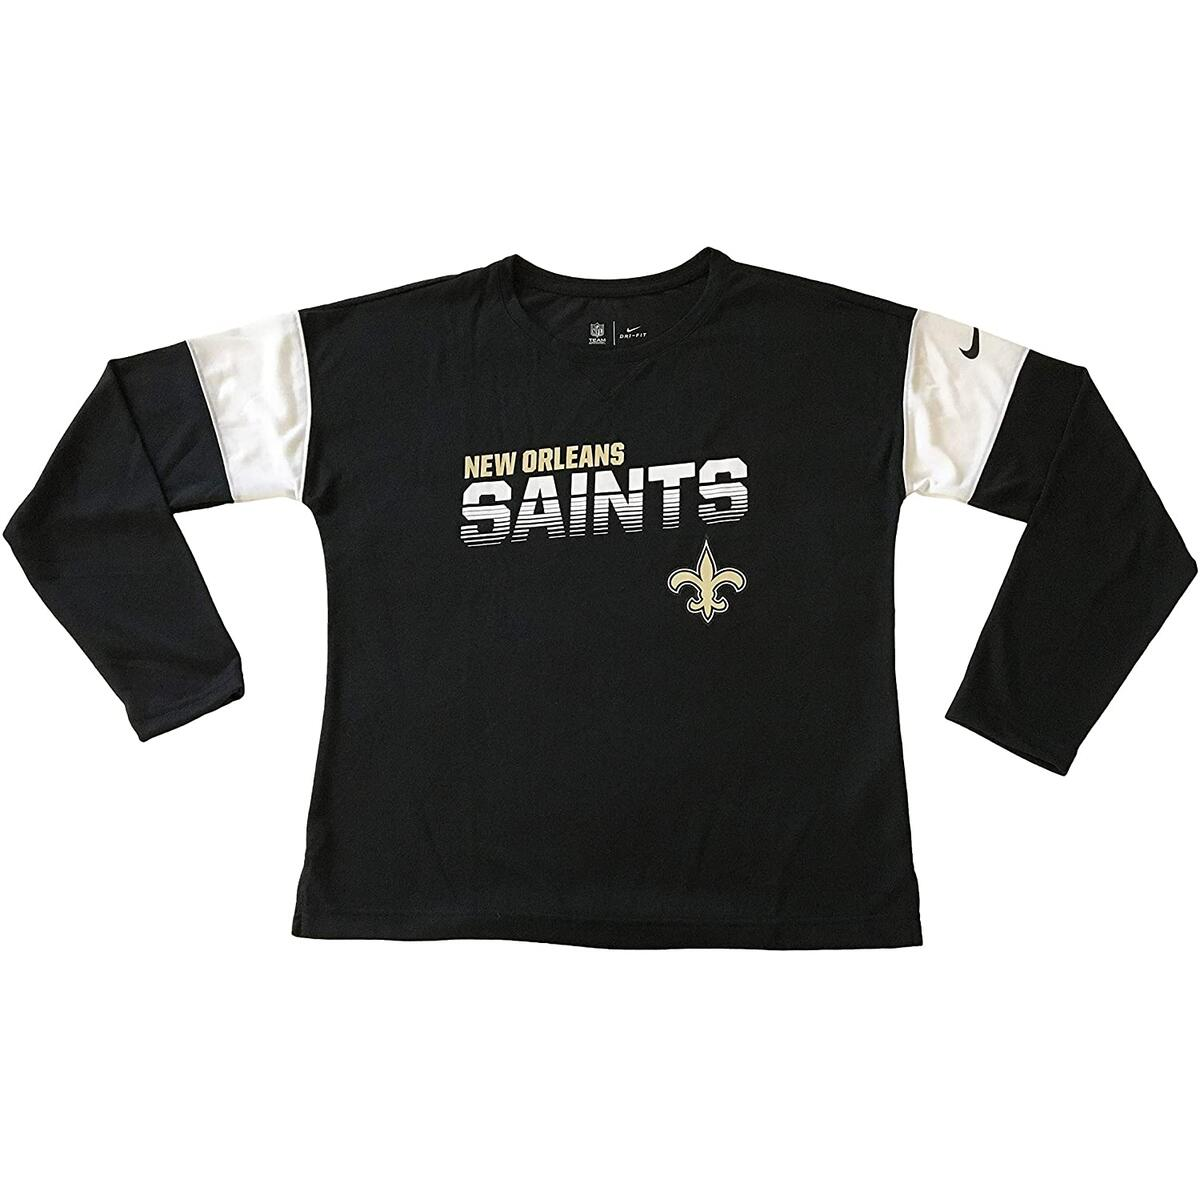 Nike New Orleans Saints NFL Women's T-Shirts Long Sleeve Crew Neck T-Shirt (Large, Black AR8655)